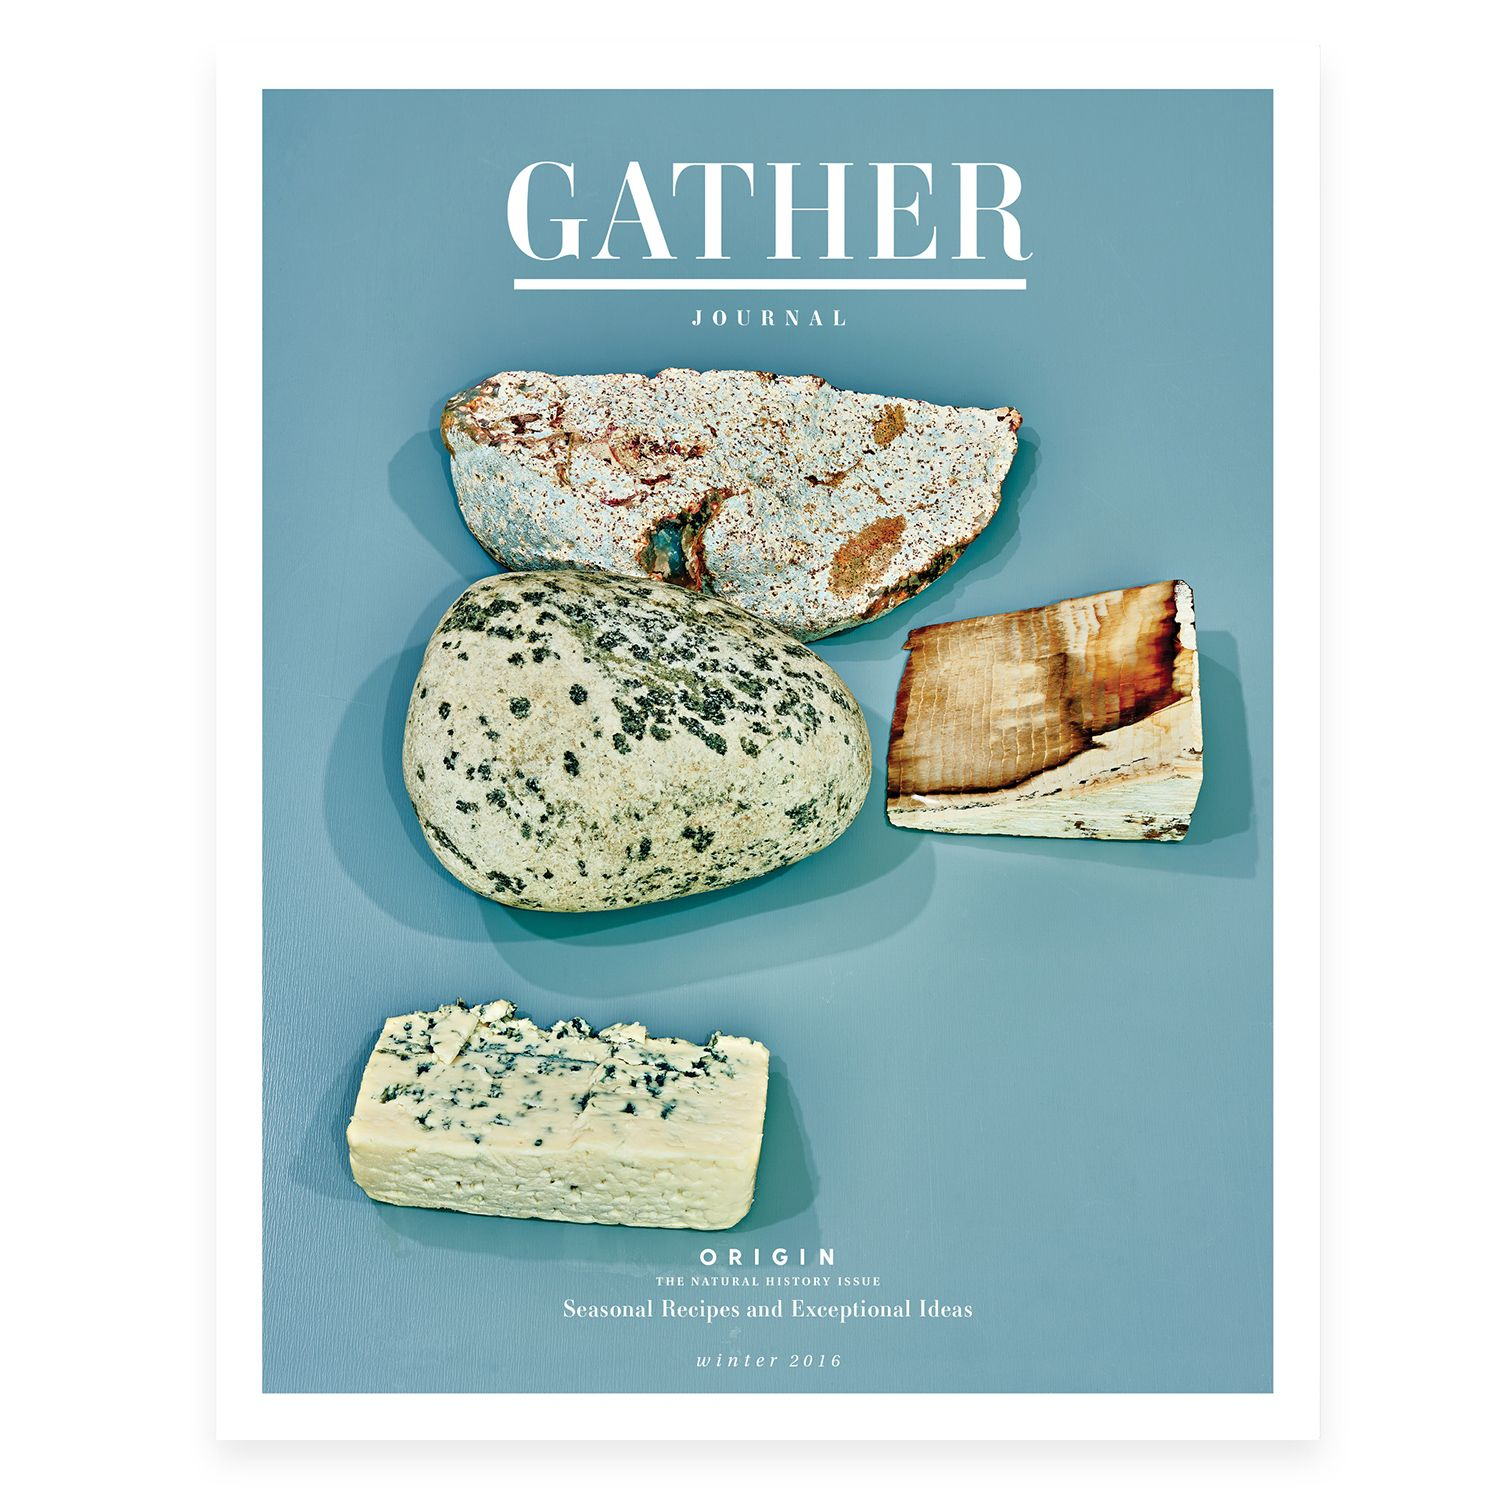 Gather Journal: Issue 8, Winter 2016, Origin – The Natural History Issue